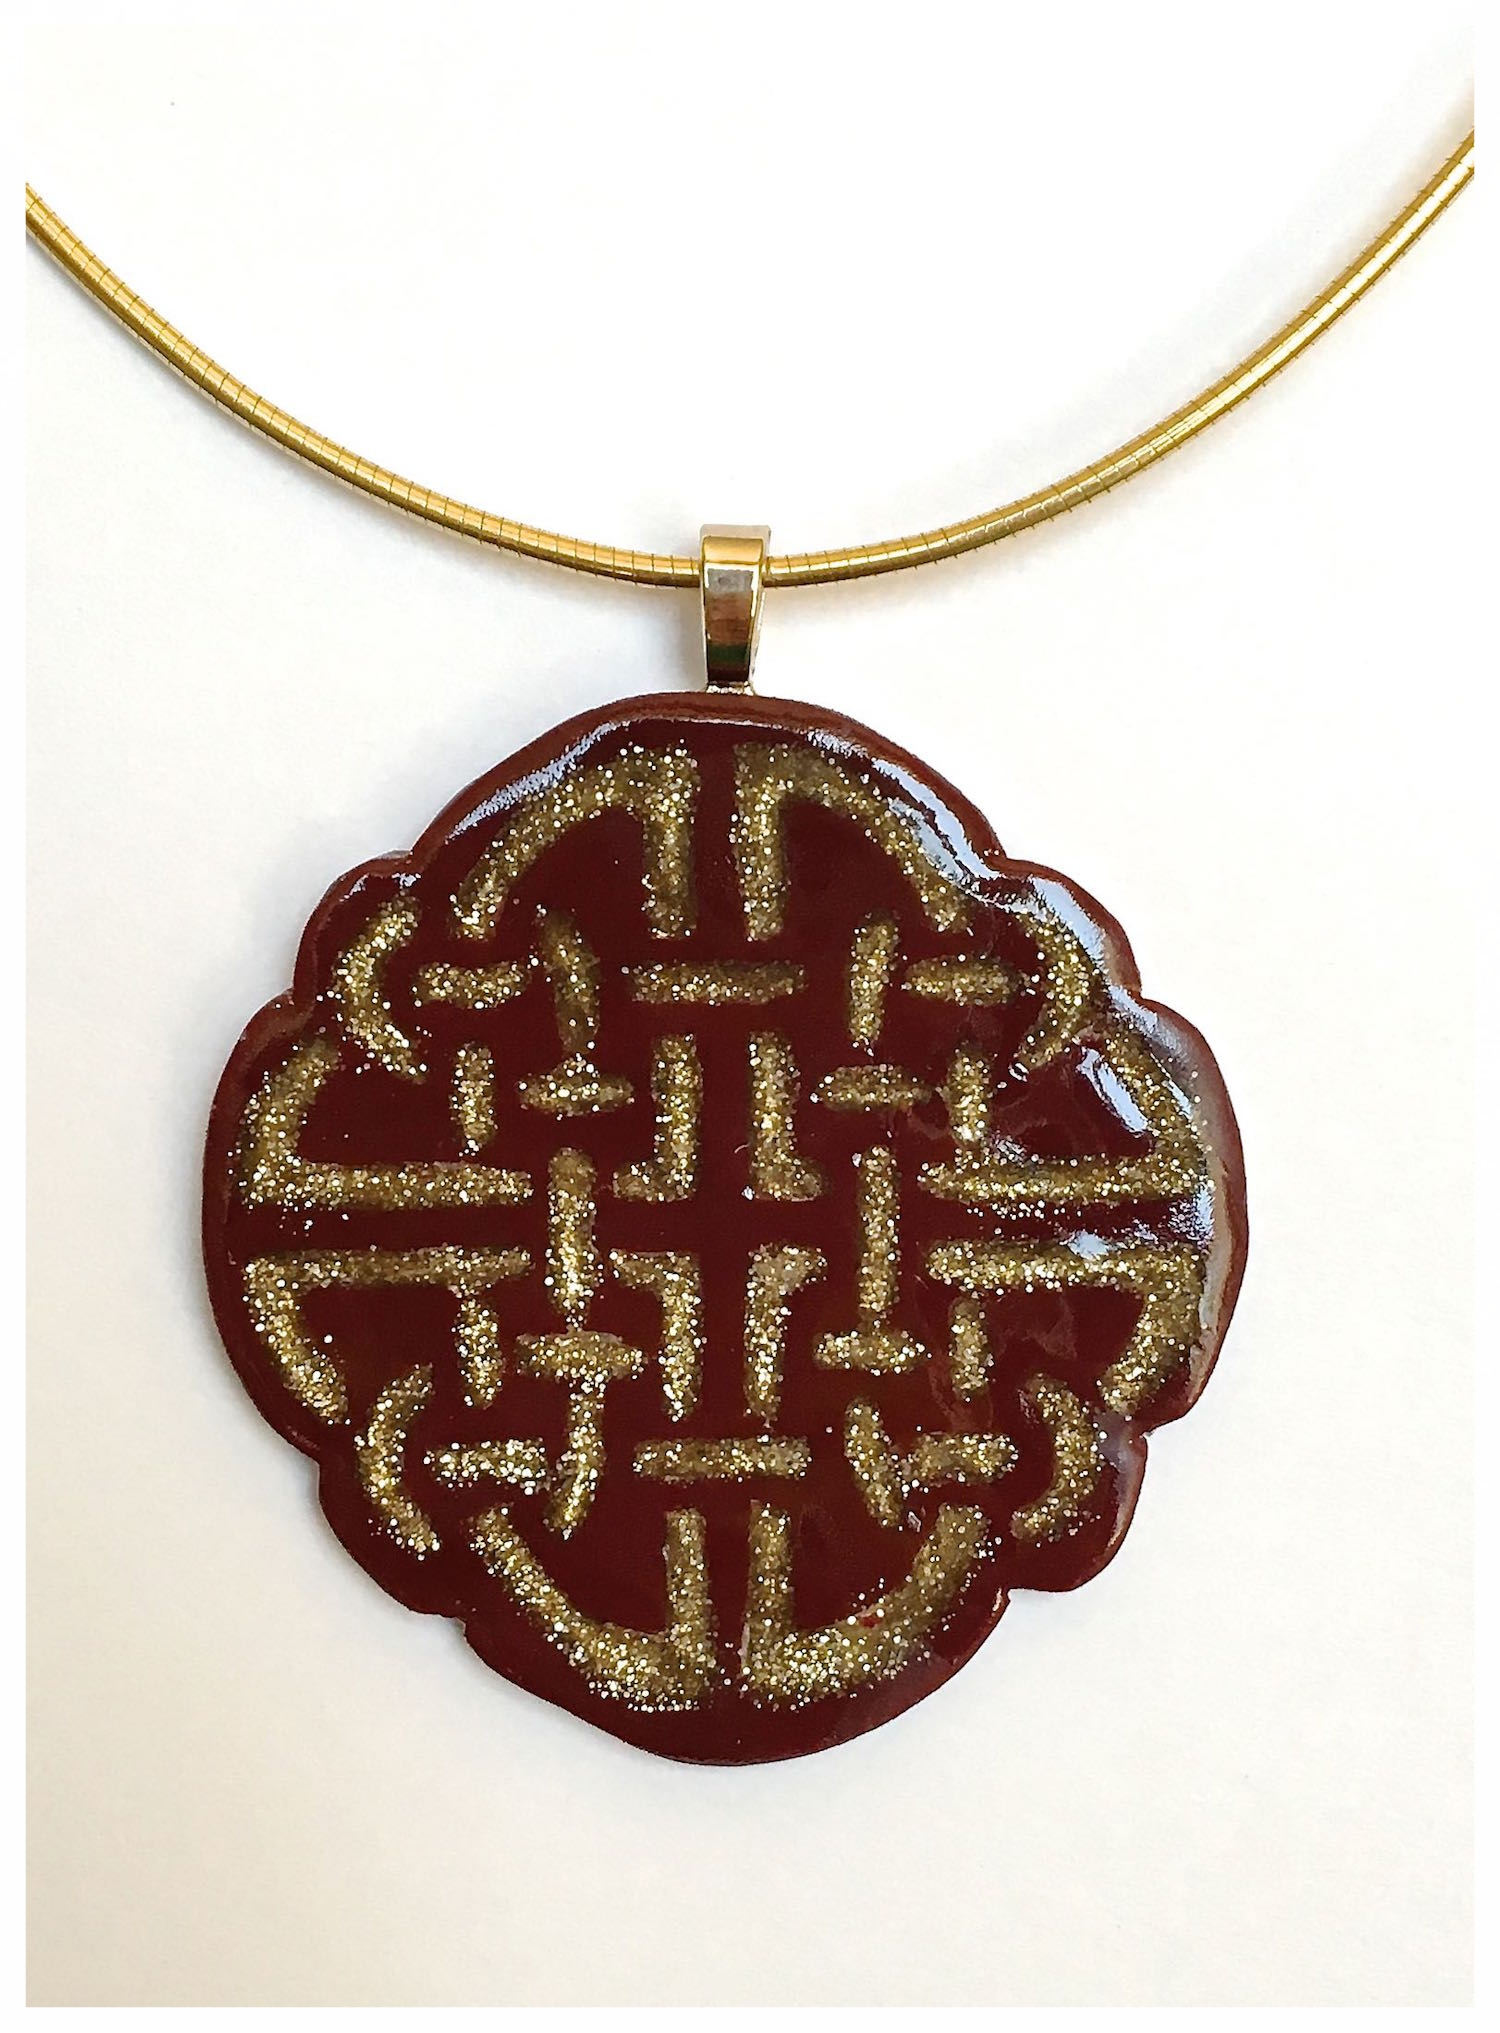 gold inlay pendant.jpg